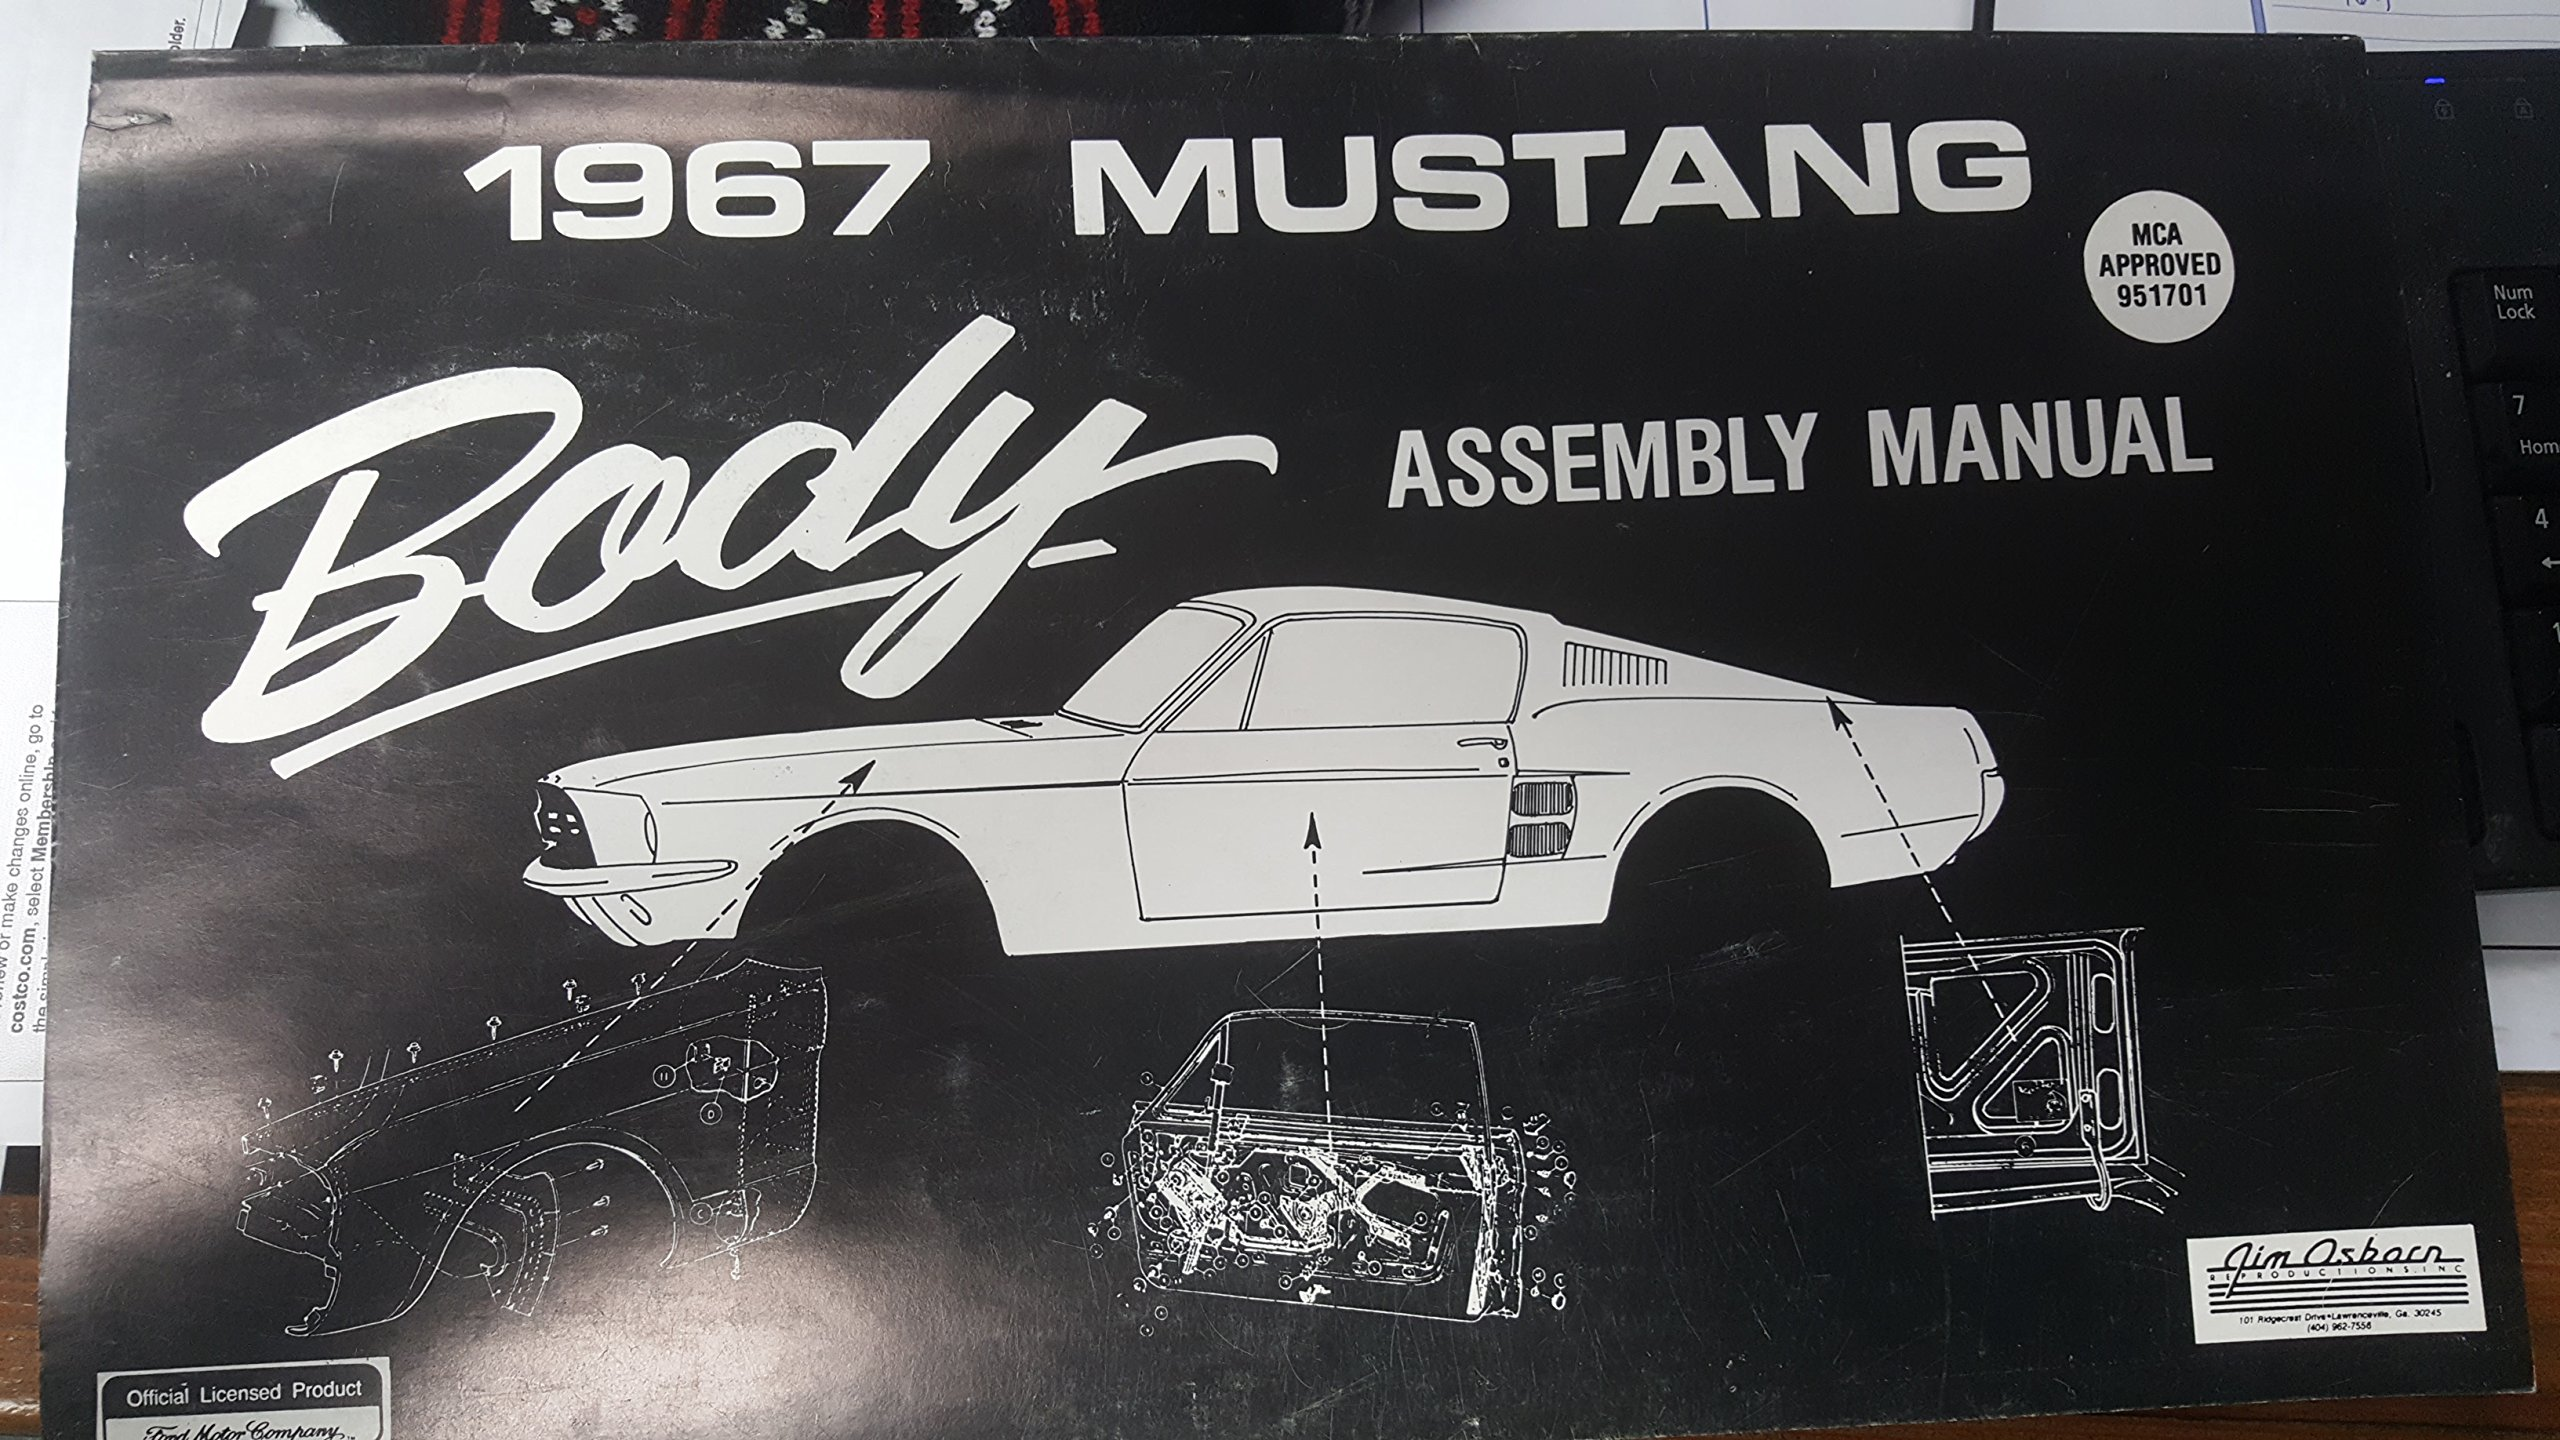 1967 mustang body assembly manual ford amazon com books rh amazon com 1968 mustang assembly manual pdf 1967 ford mustang assembly manual